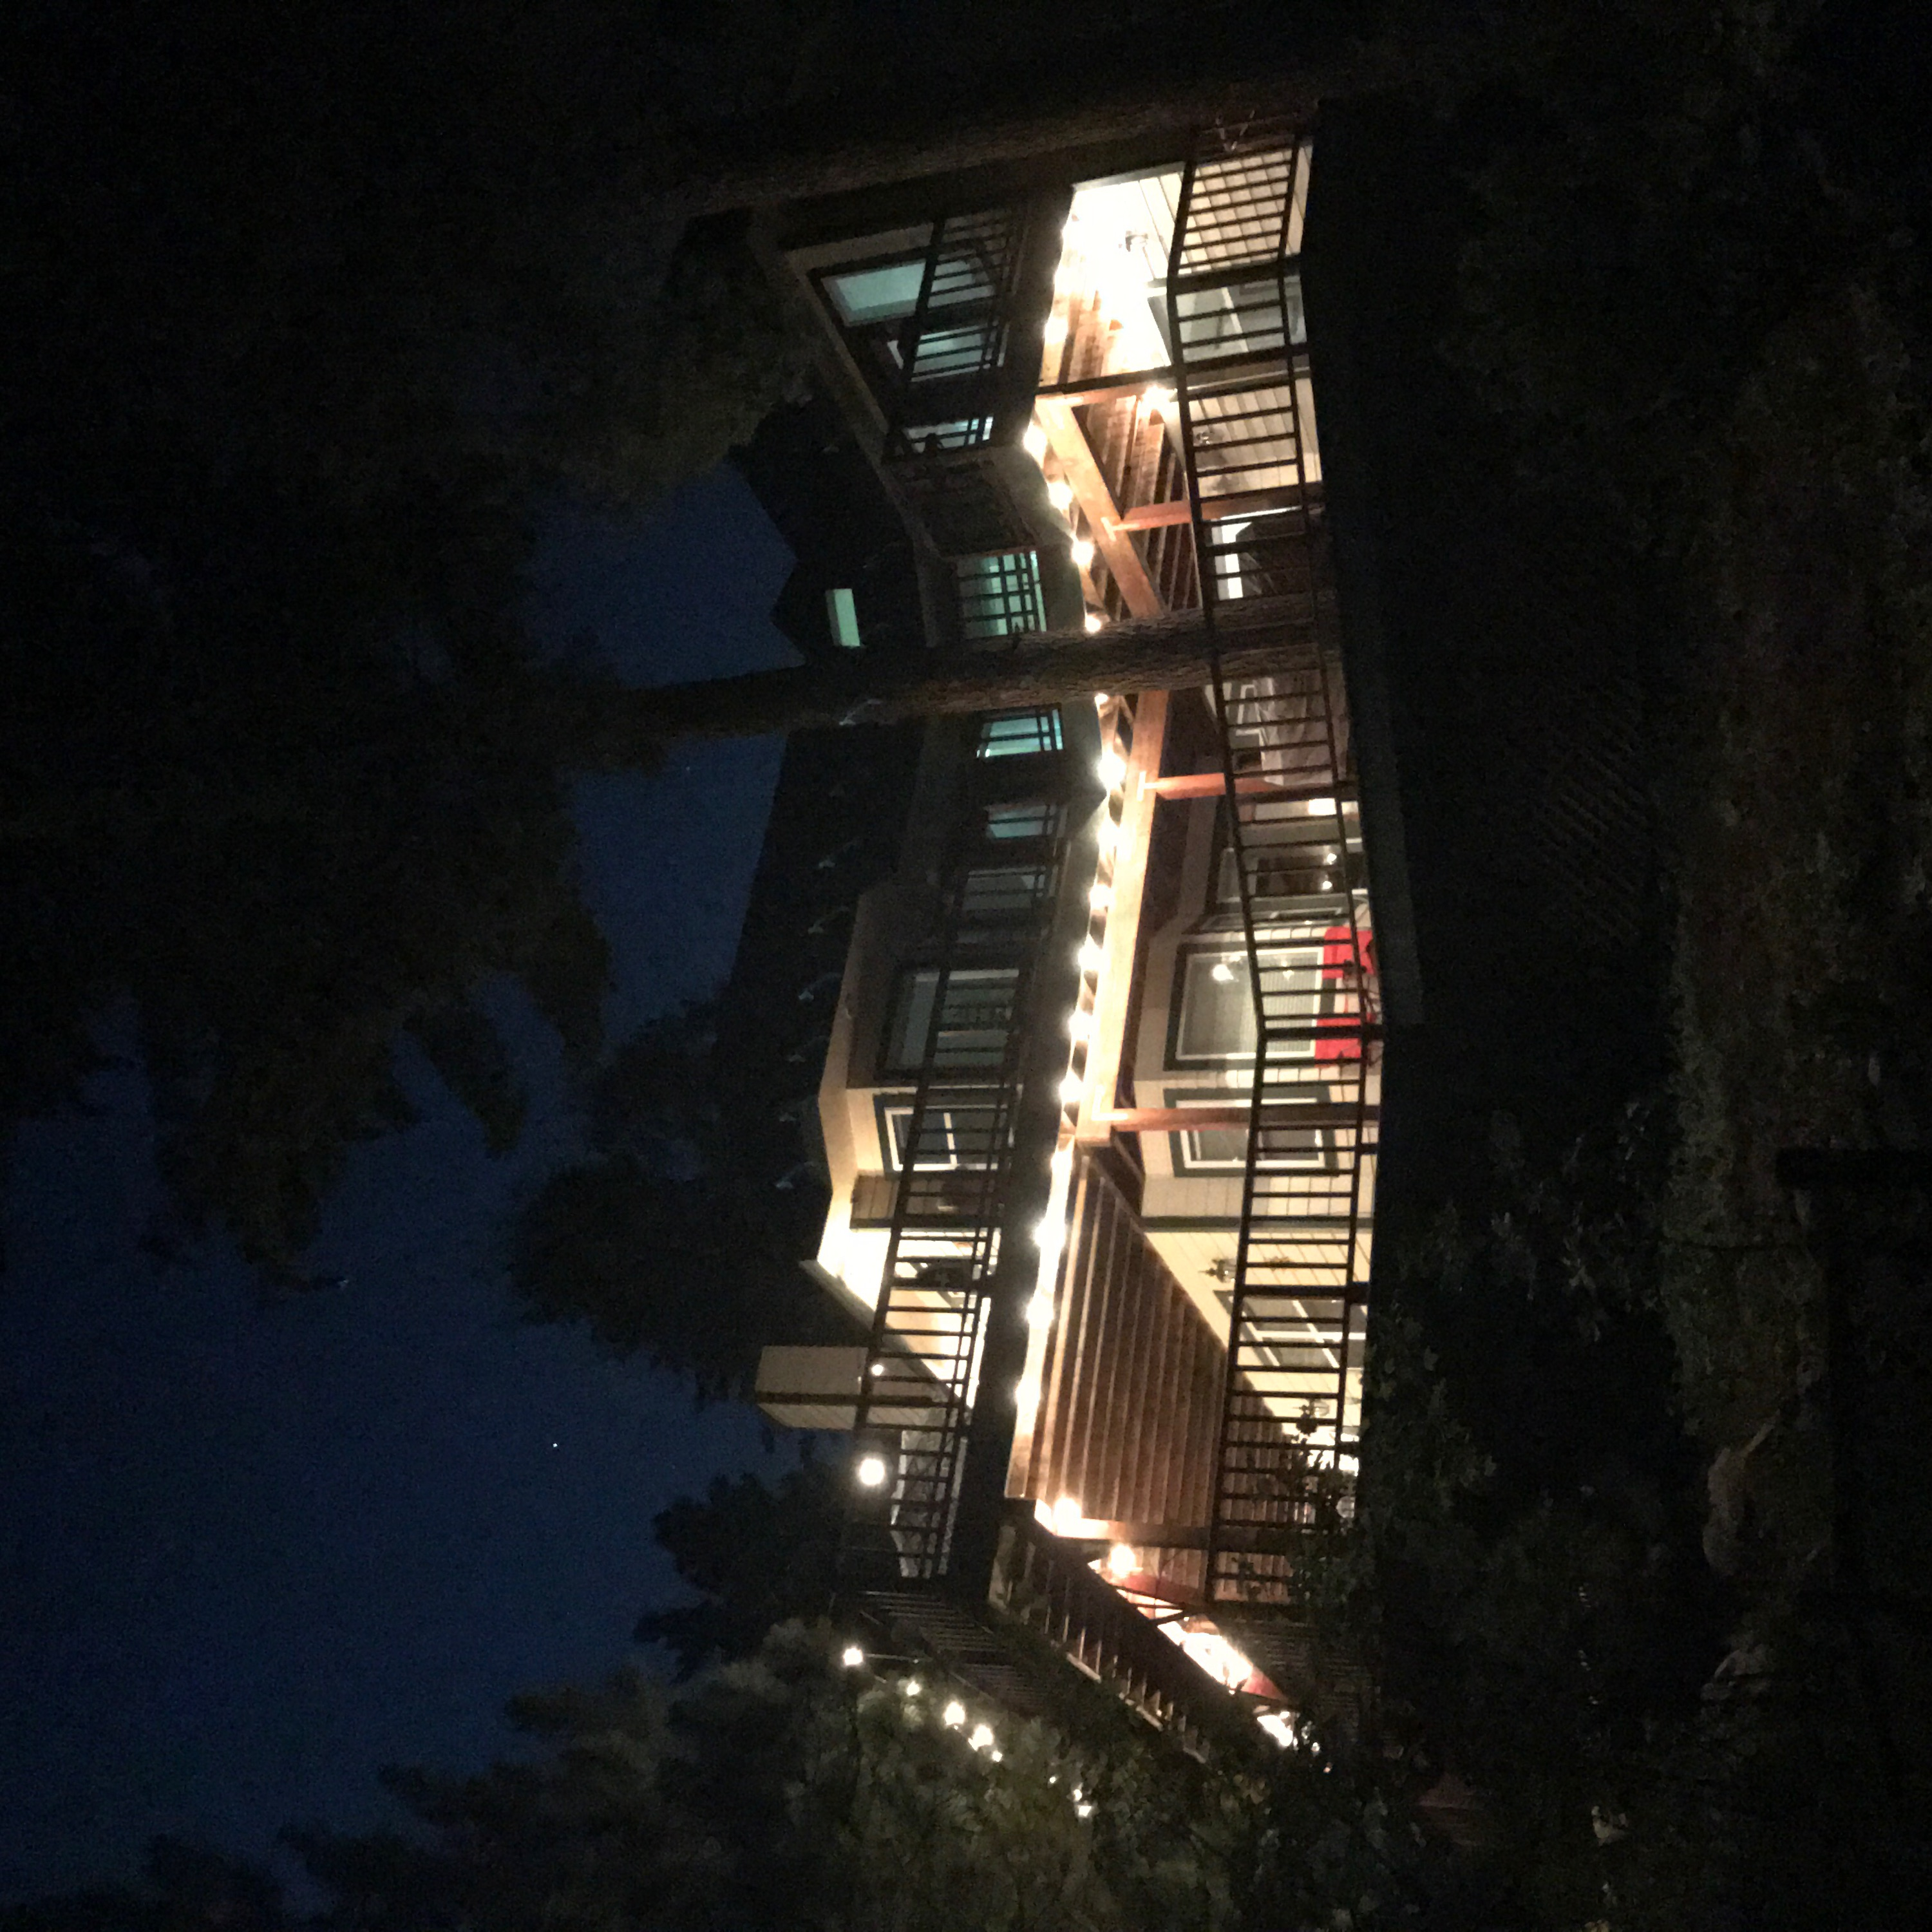 Night View of the Lodge